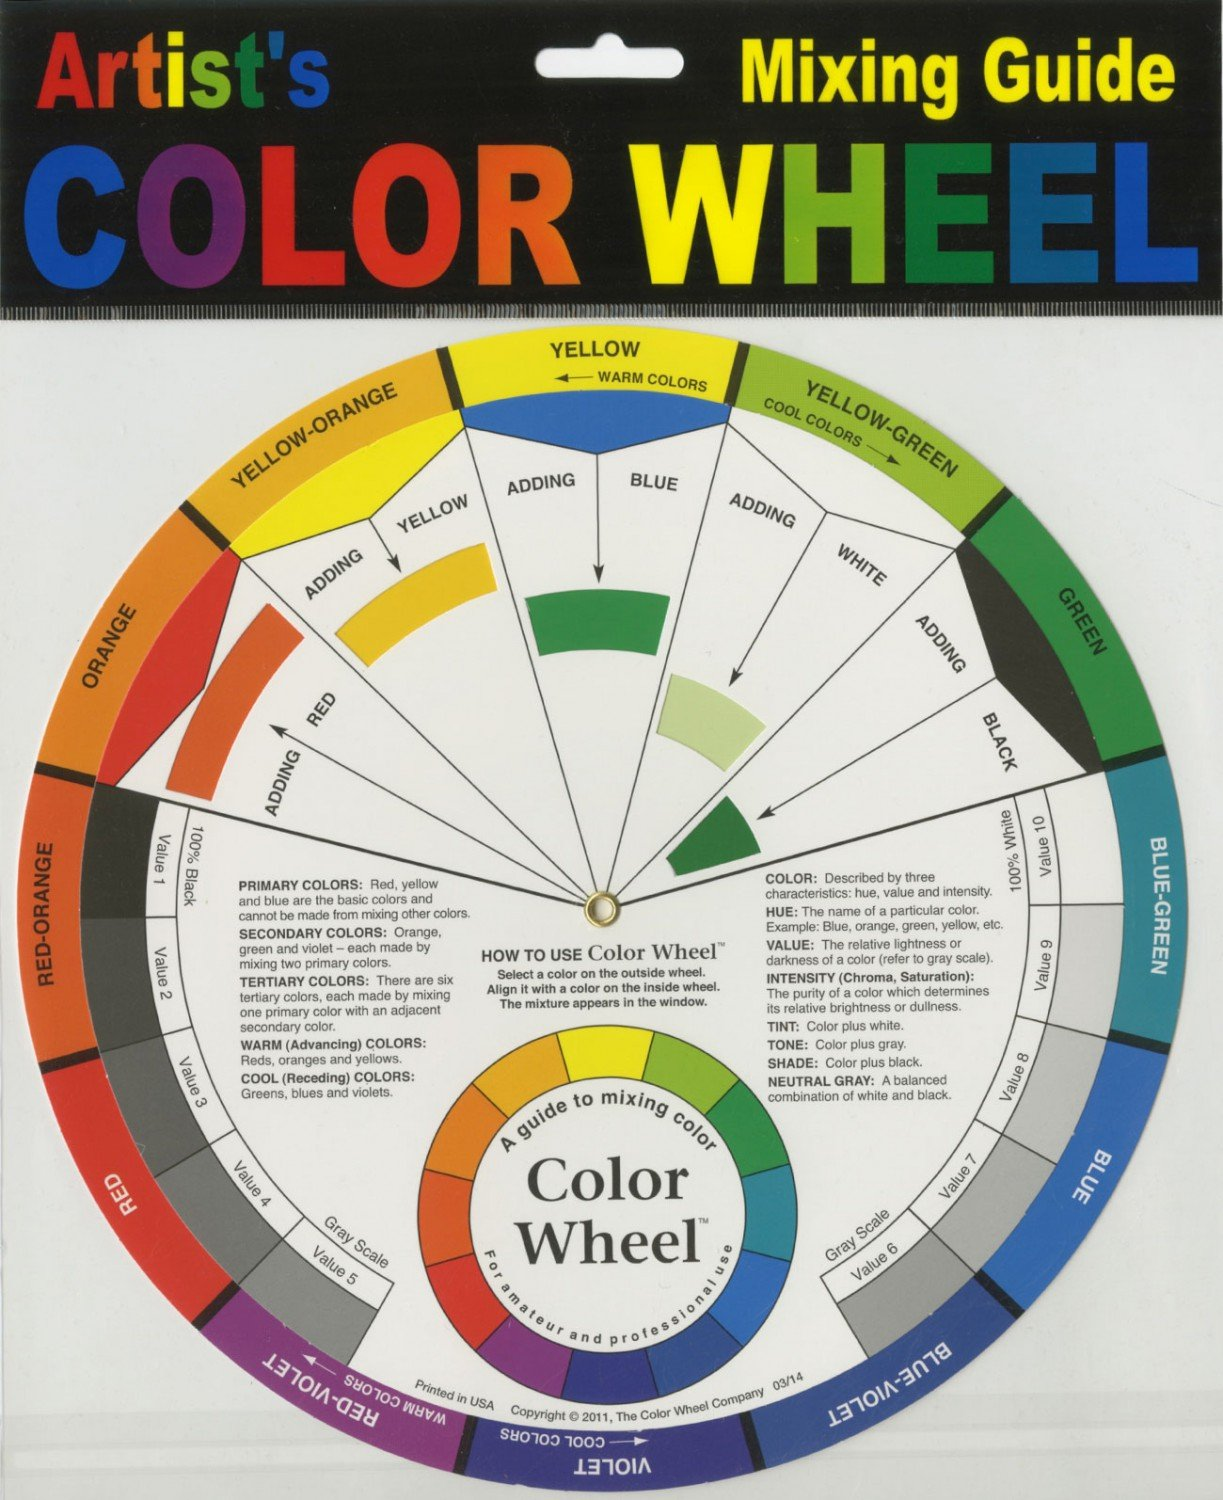 Color Wheel Mixing Guide 9-1/4